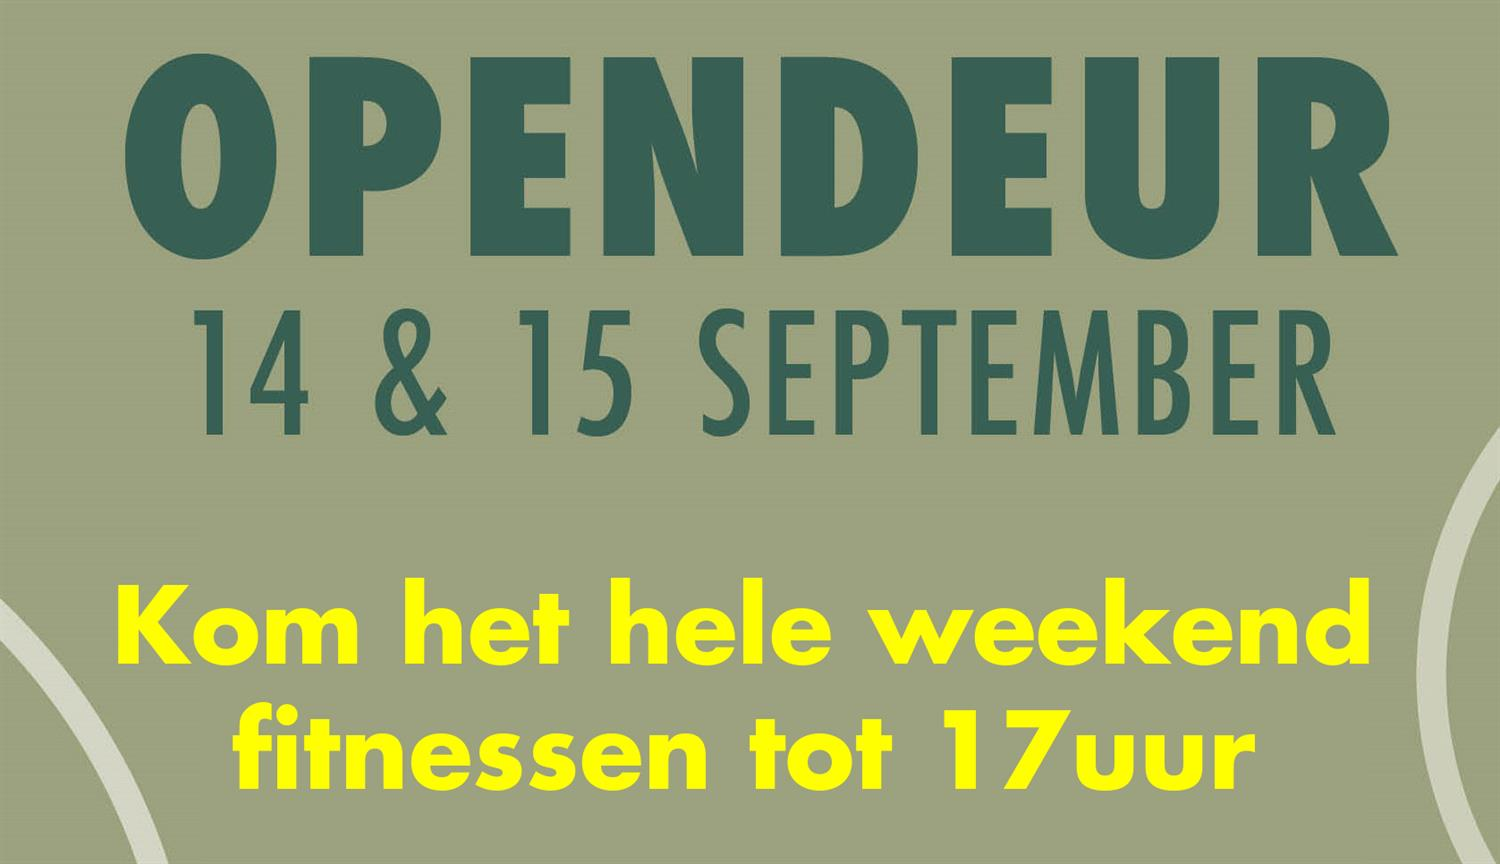 OPENDEUR WEEKEND